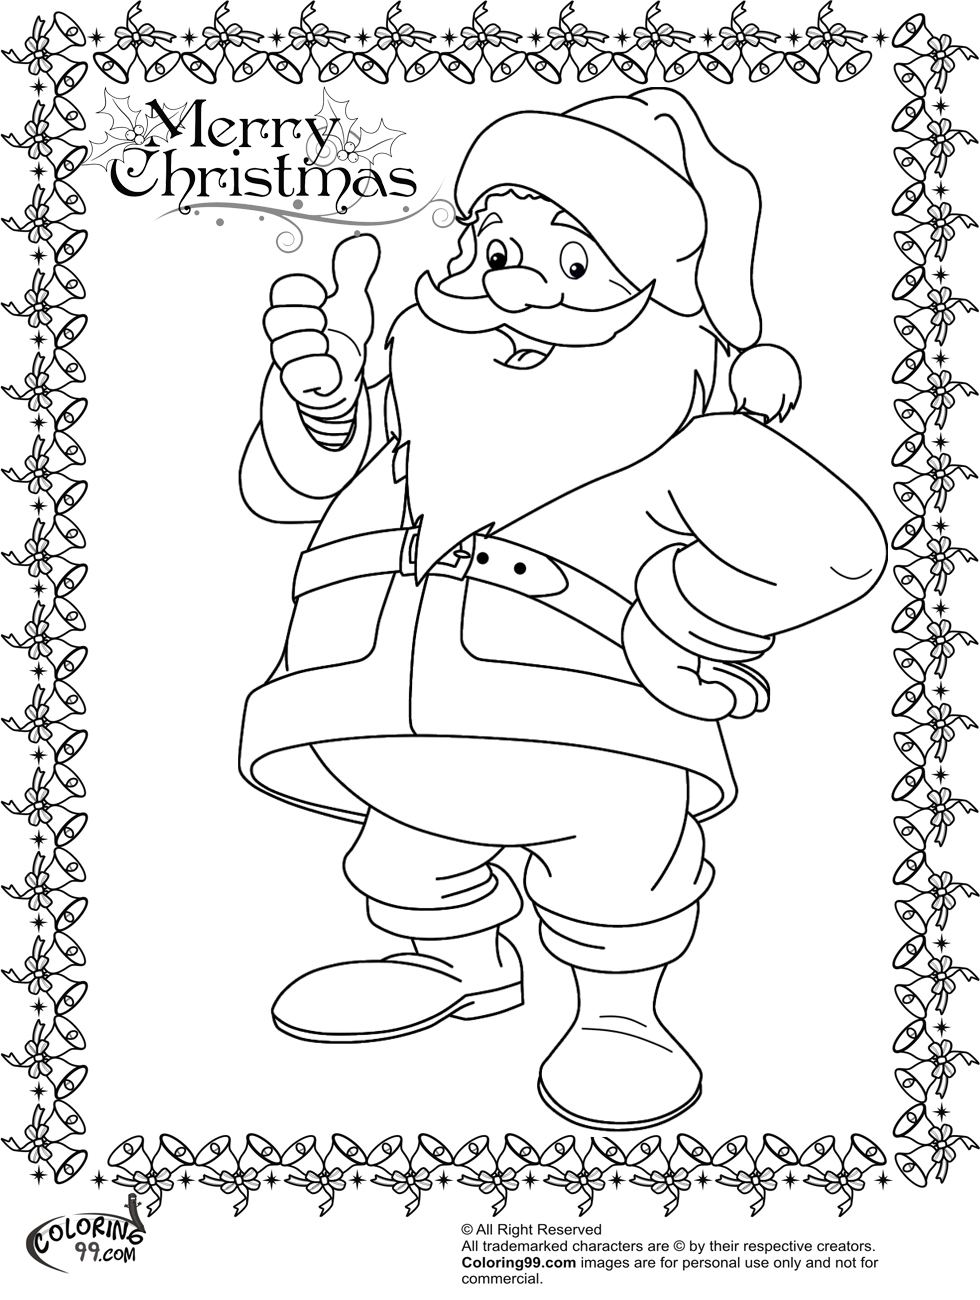 Santa Claus Coloring Pages Team colors